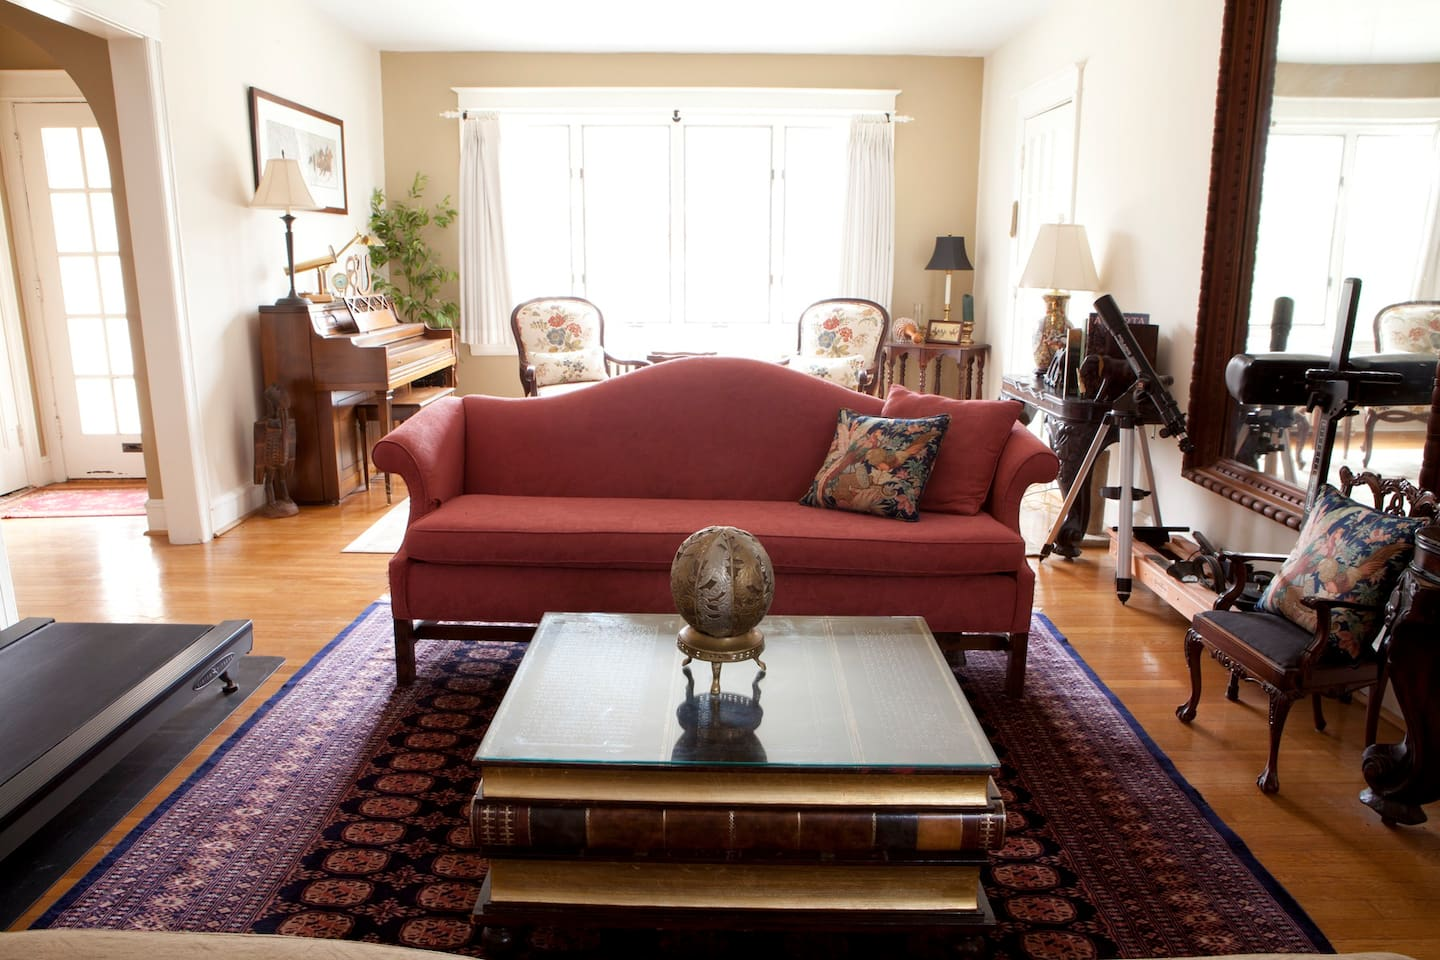 Living room (treadmill is no longer there); front door & entryway on the left, fireplace is behind the photographer.